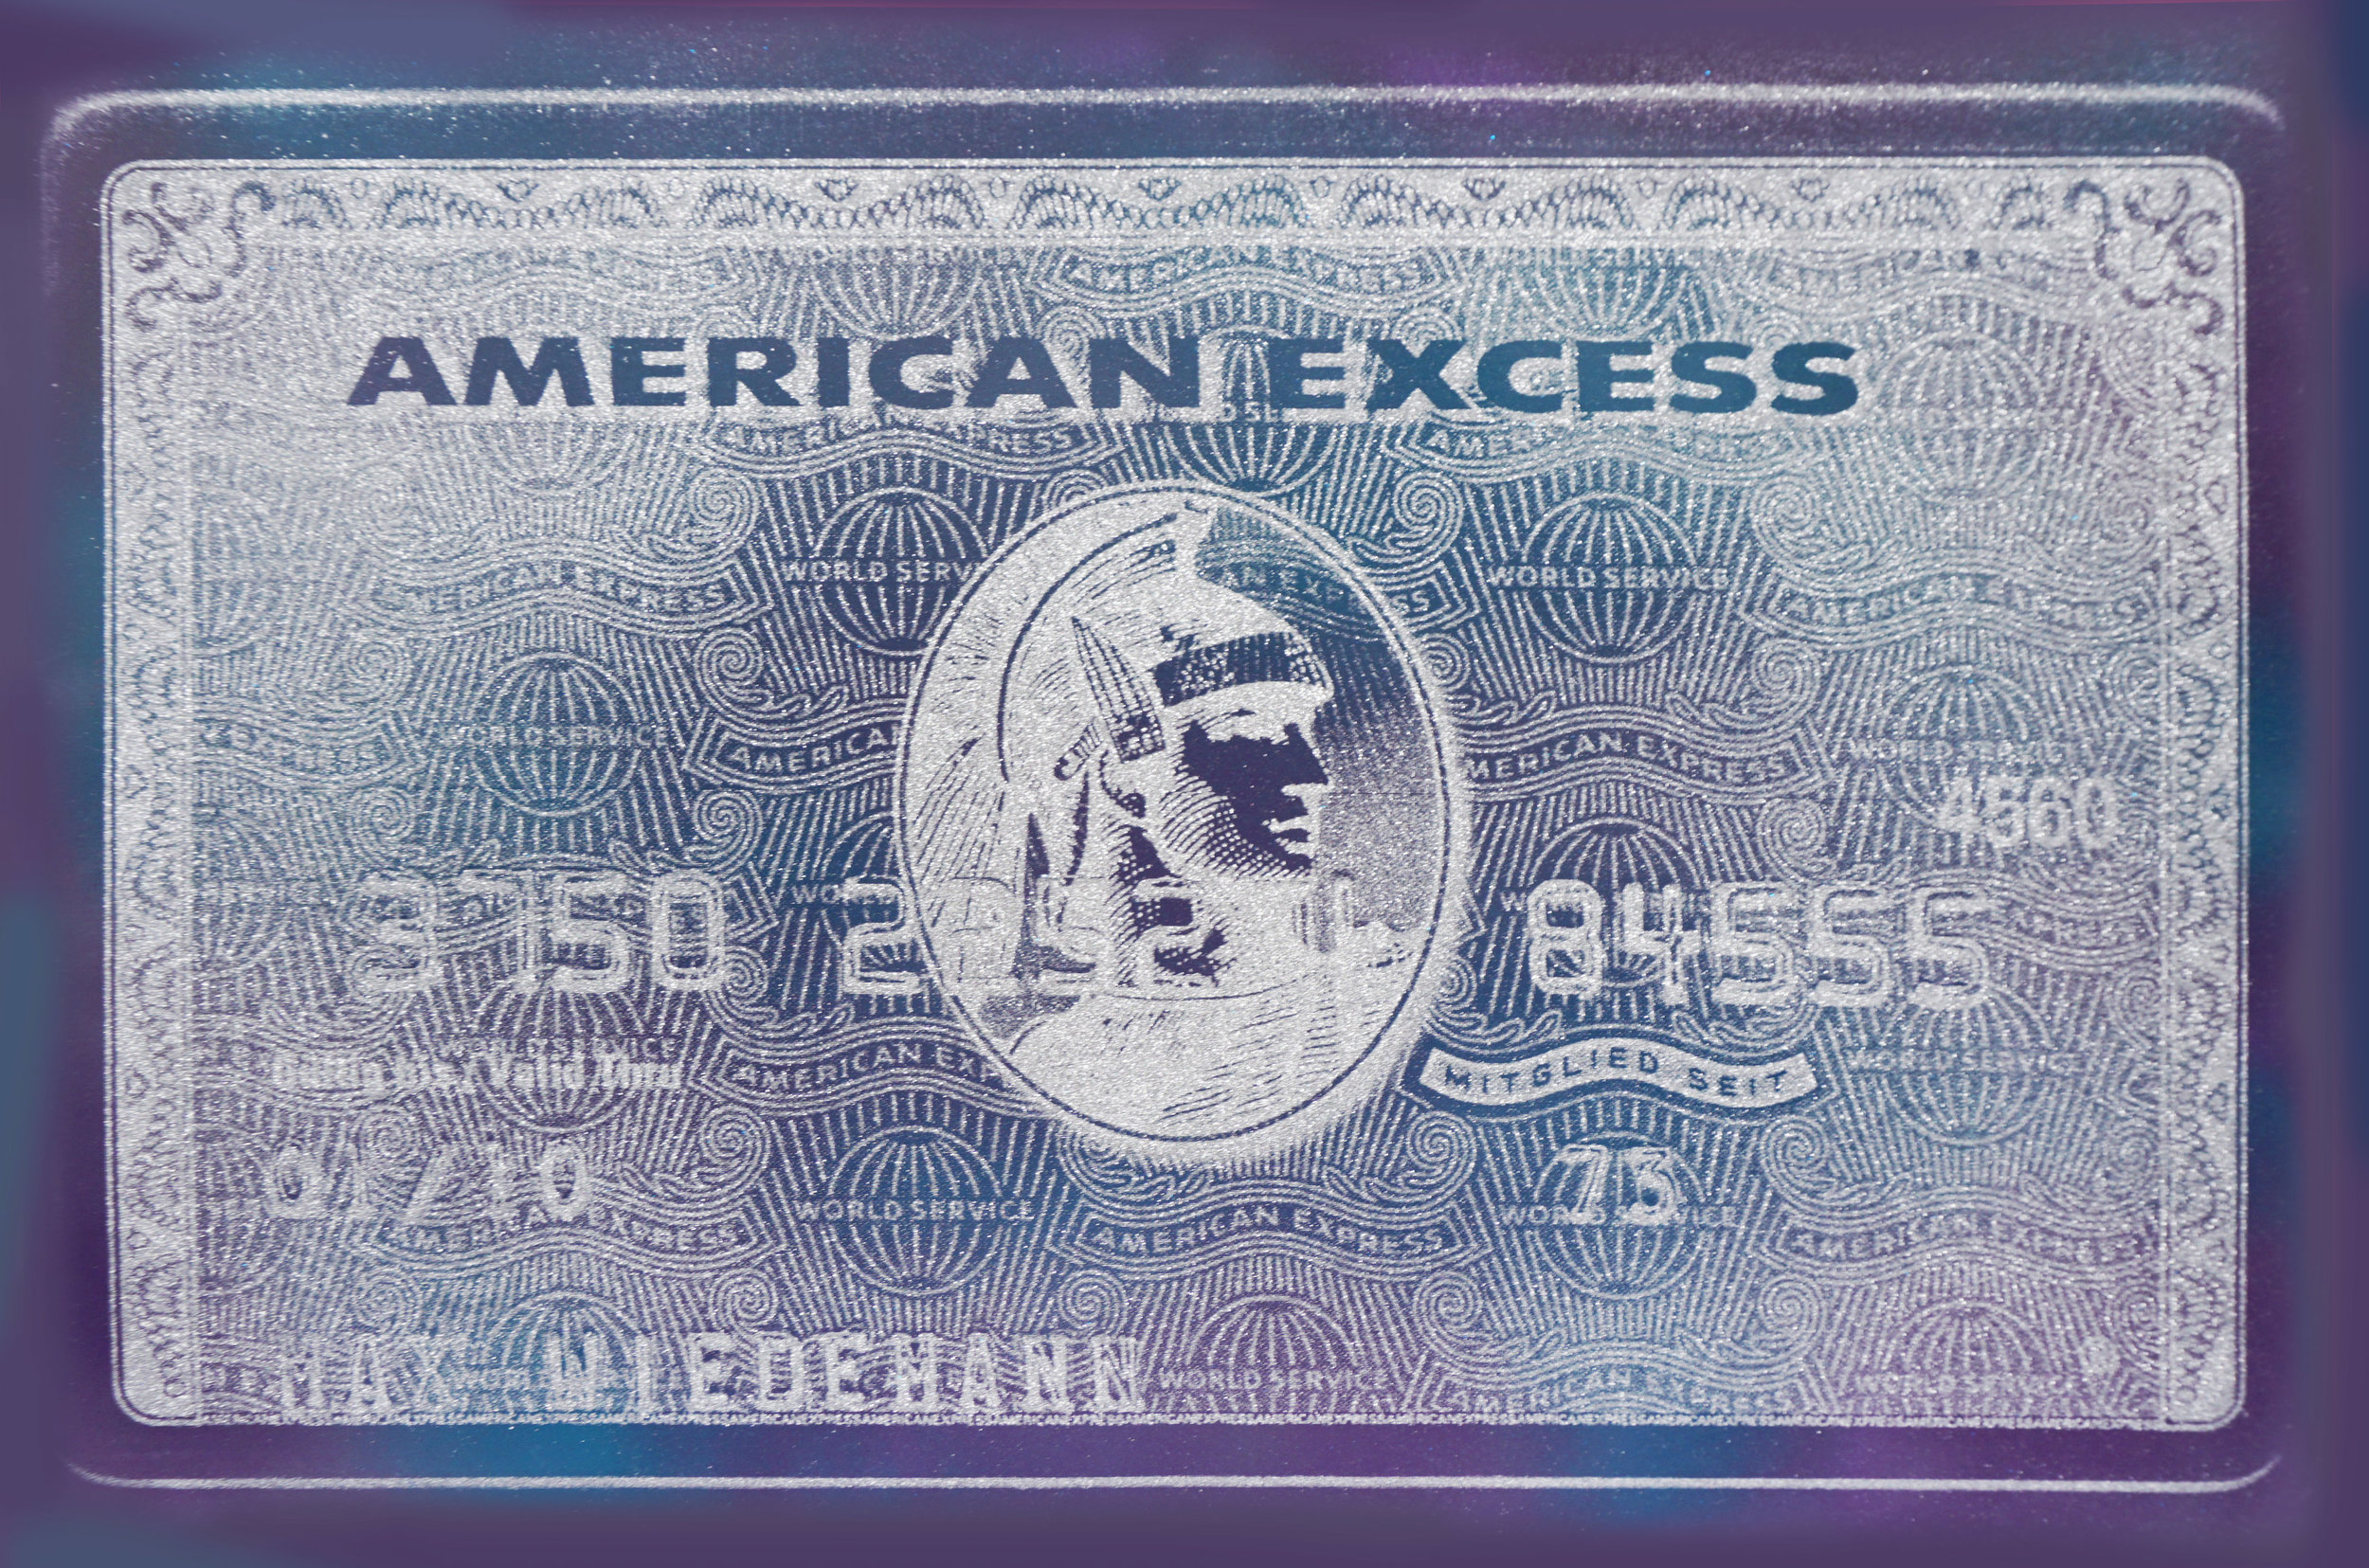 Amex-BLUE-PURPLE-DD.jpg